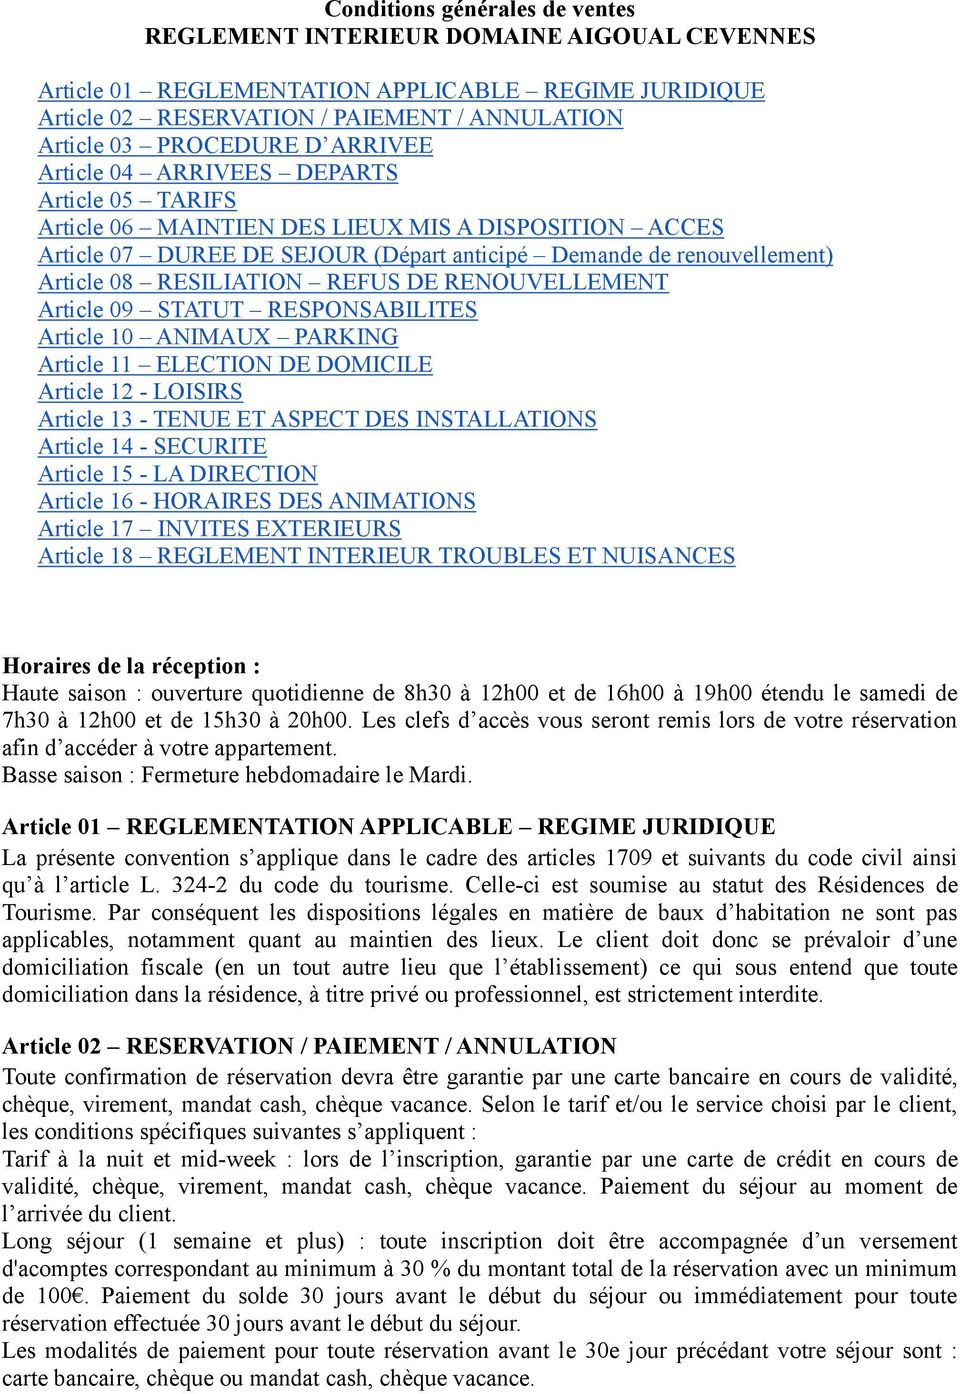 RESILIATION REFUS DE RENOUVELLEMENT Article 09 STATUT RESPONSABILITES Article 10 ANIMAUX PARKING Article 11 ELECTION DE DOMICILE Article 12 - LOISIRS Article 13 - TENUE ET ASPECT DES INSTALLATIONS